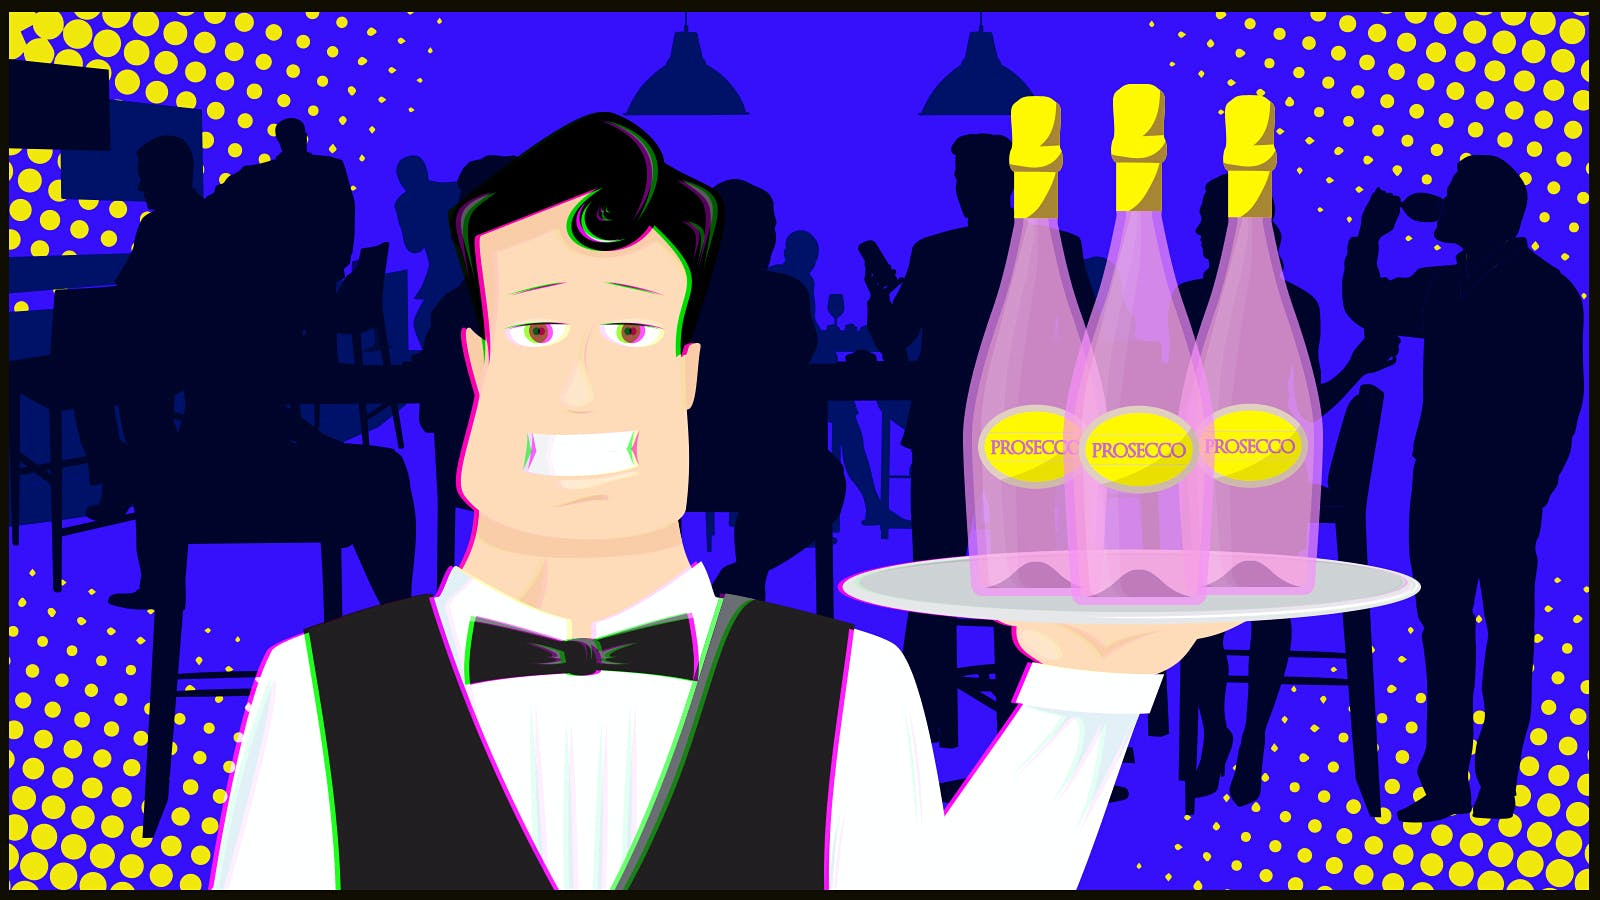 The Coming of Pink Prosecco